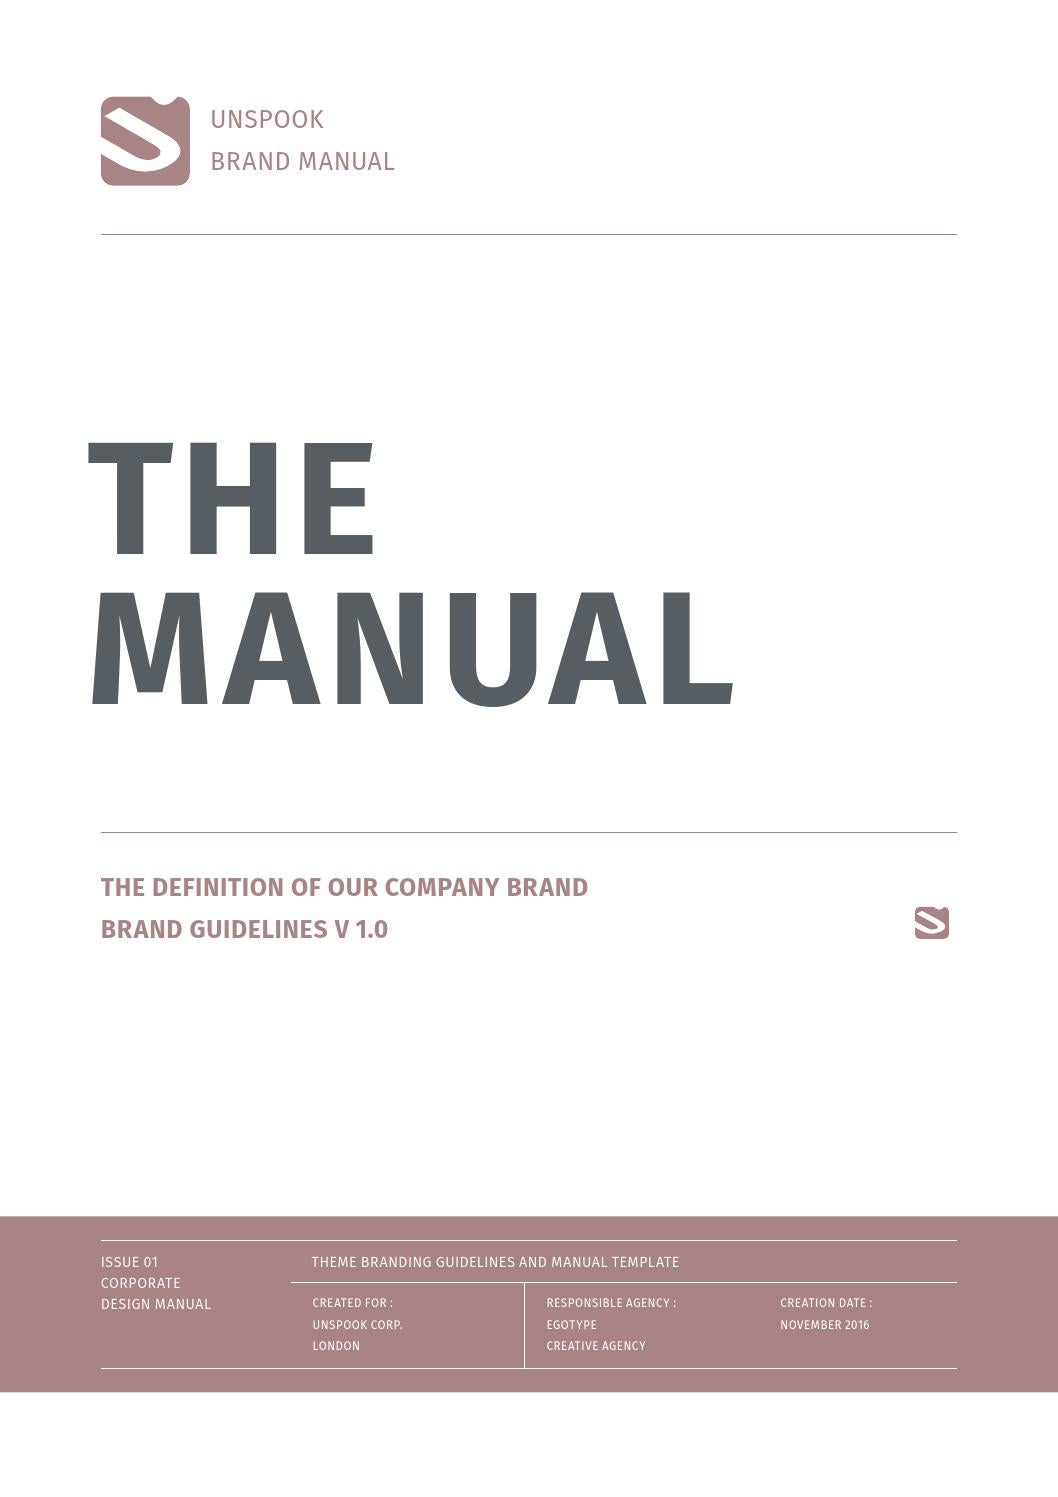 Sparger design procedure manual template